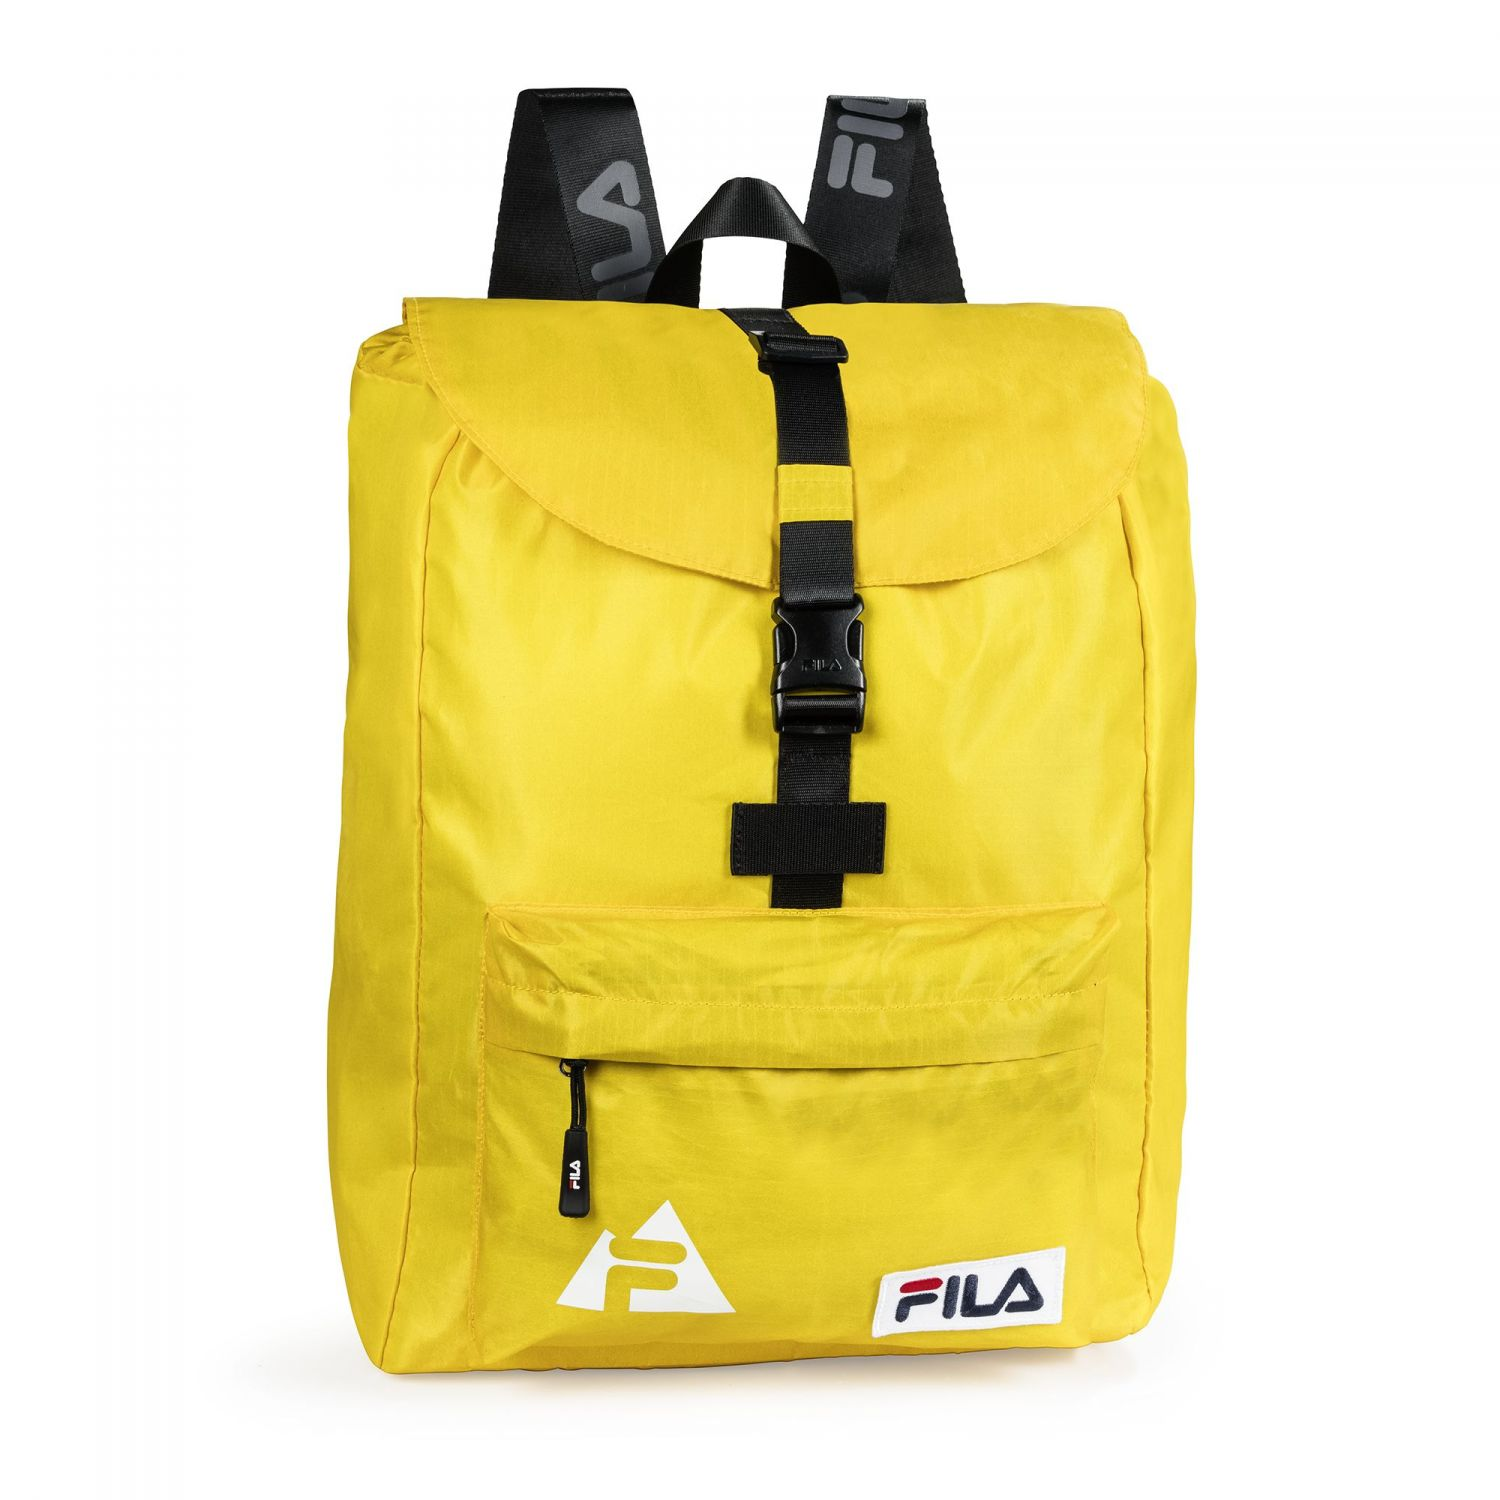 Fila - Backpack Stockholm - 00014201662587 - yellow